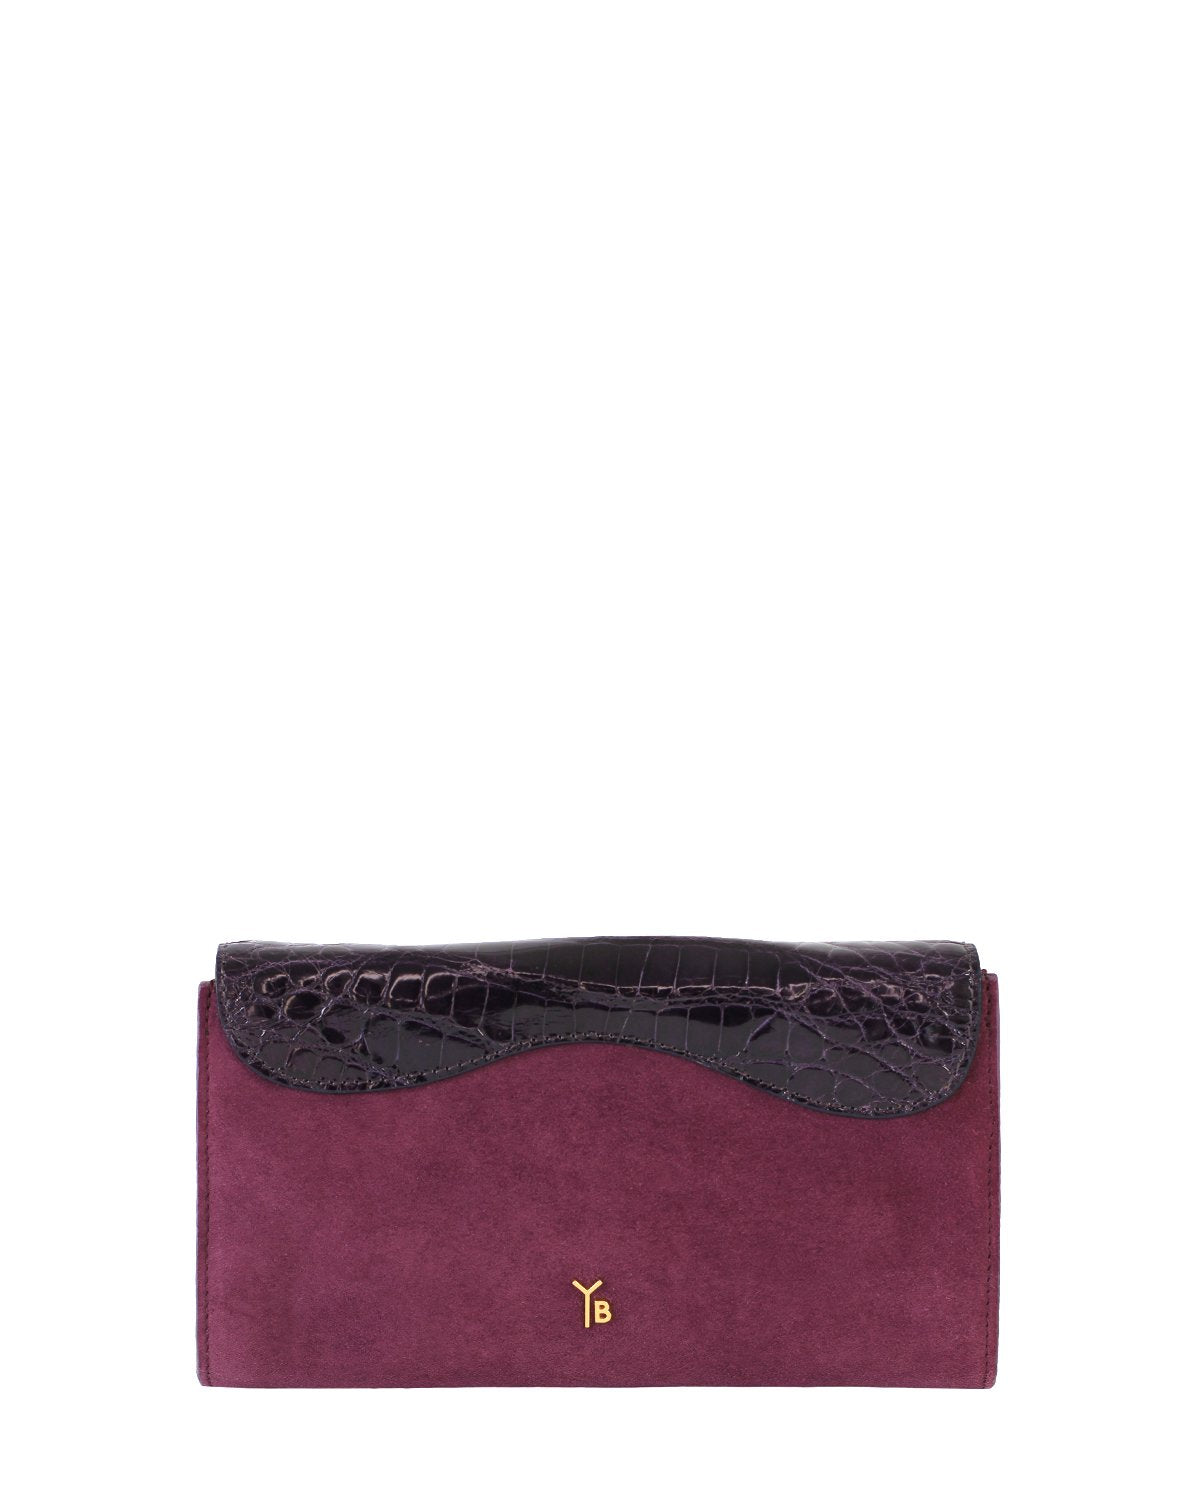 RED VIOLET GRAY ALLIGATOR OSTRICH OSCAR CLUTCH YELLOW GOLD YARA BASHOOR BACK VIEW